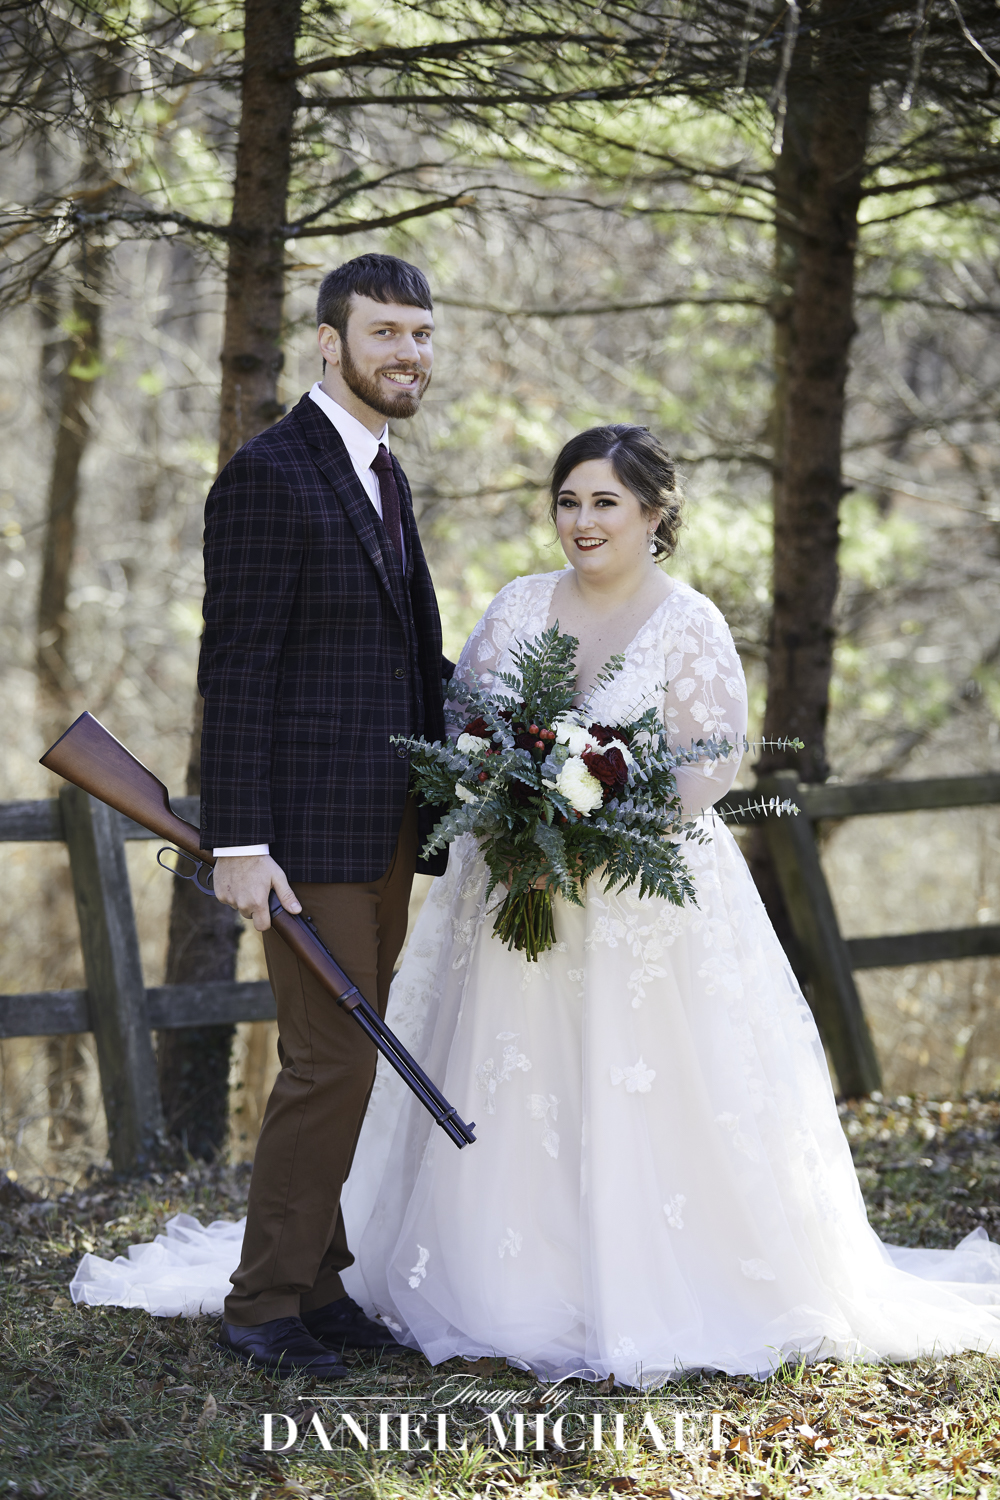 Wedding Photography with Gun